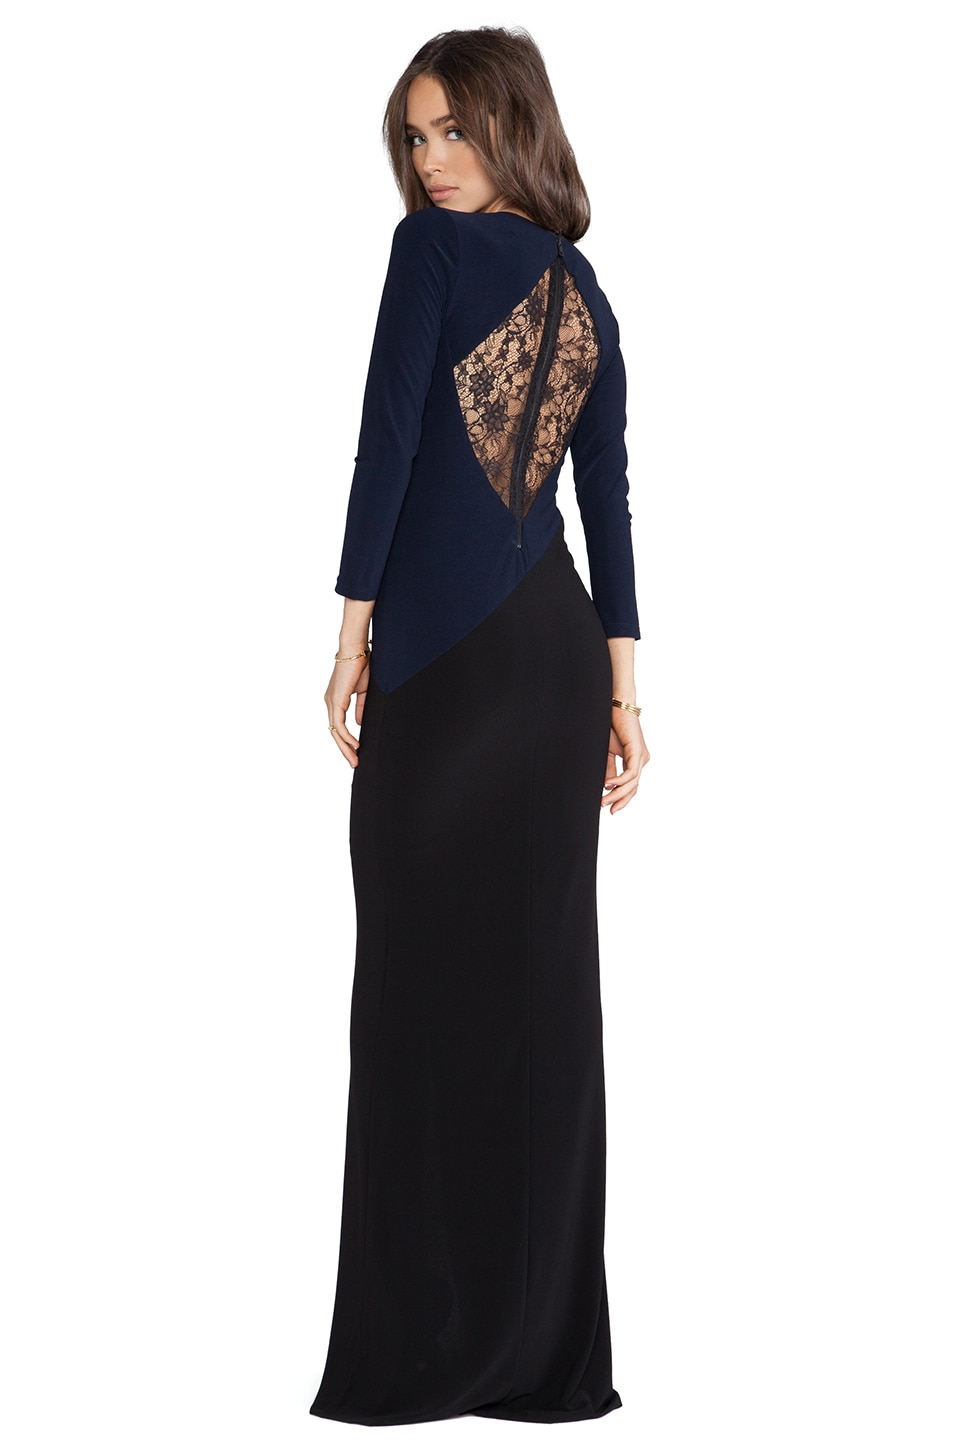 Alice + Olivia Stella V Neck Maxi Dress in Navy & Black